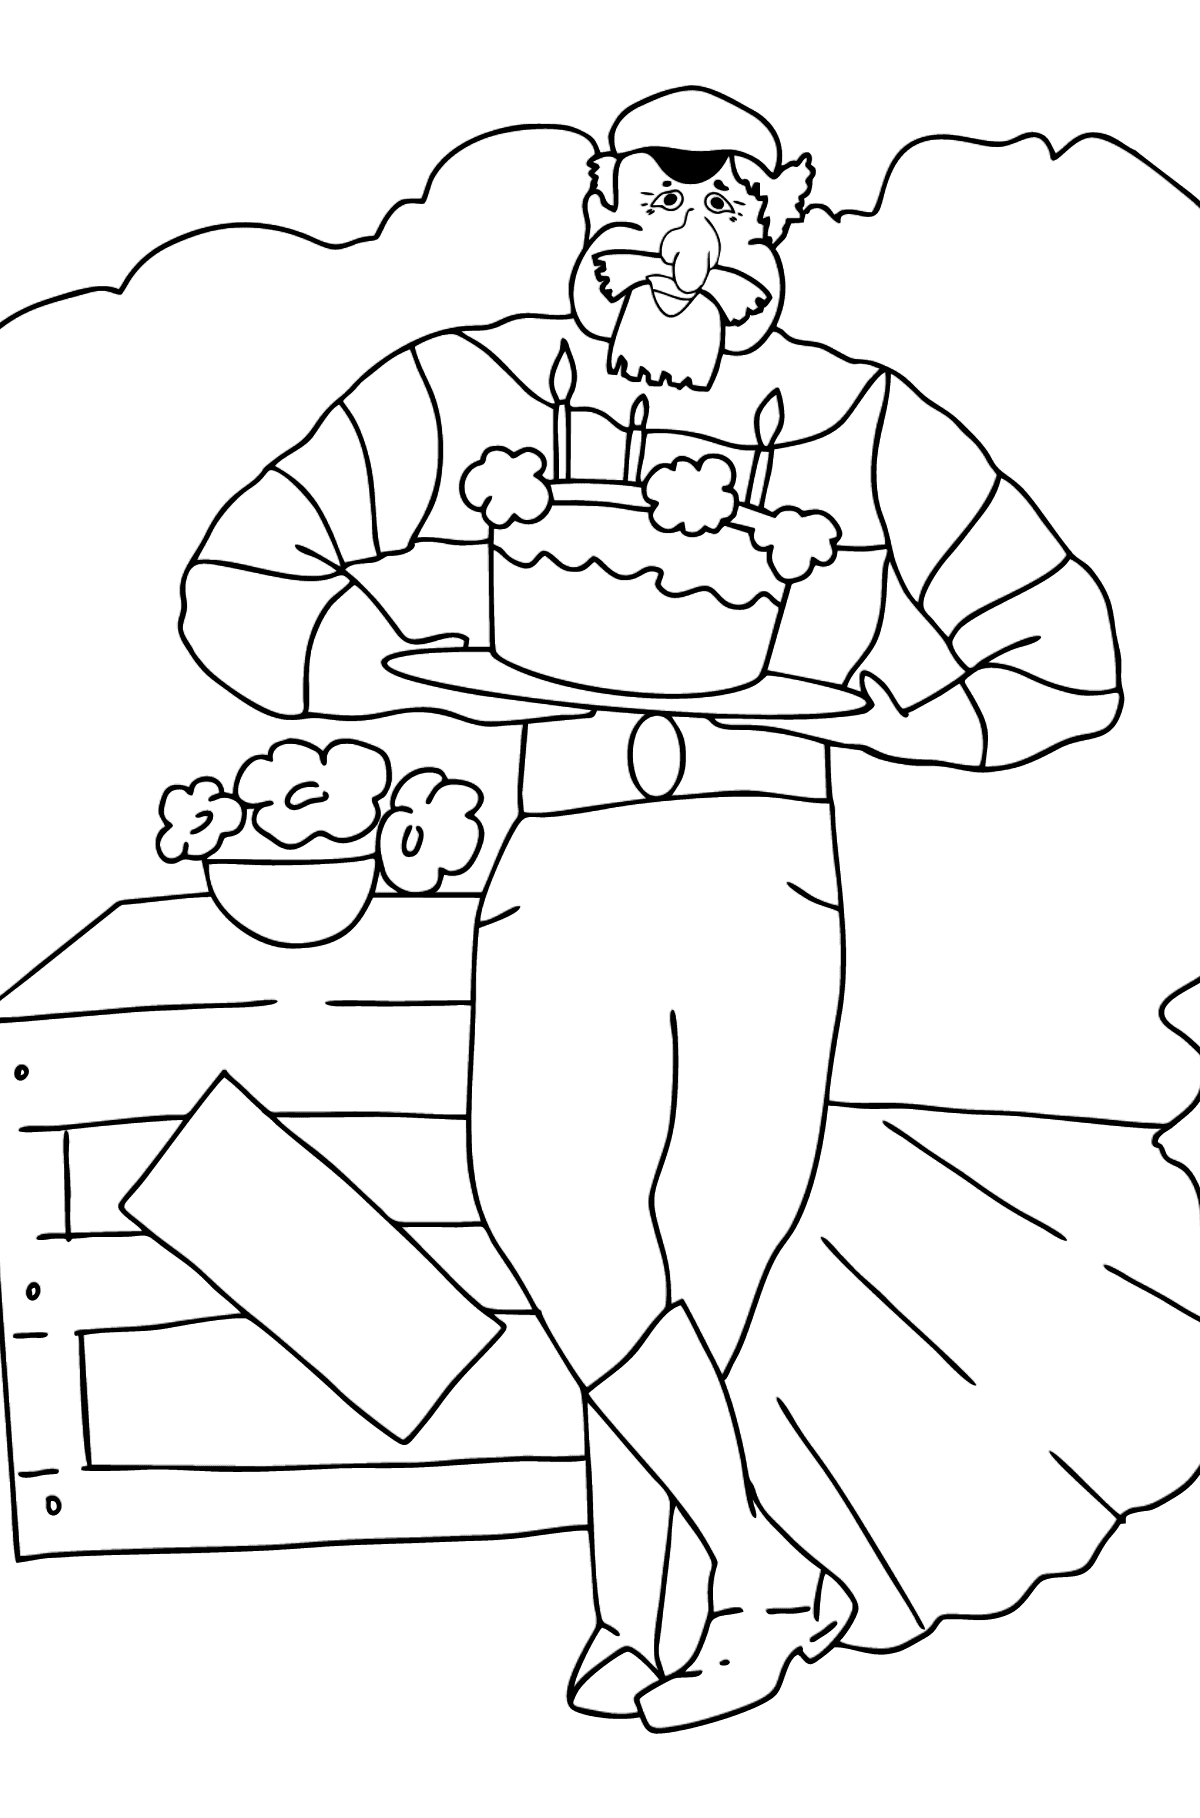 Coloring Page - A Pirate is Celebrating his Birthday - Coloring Pages for Kids